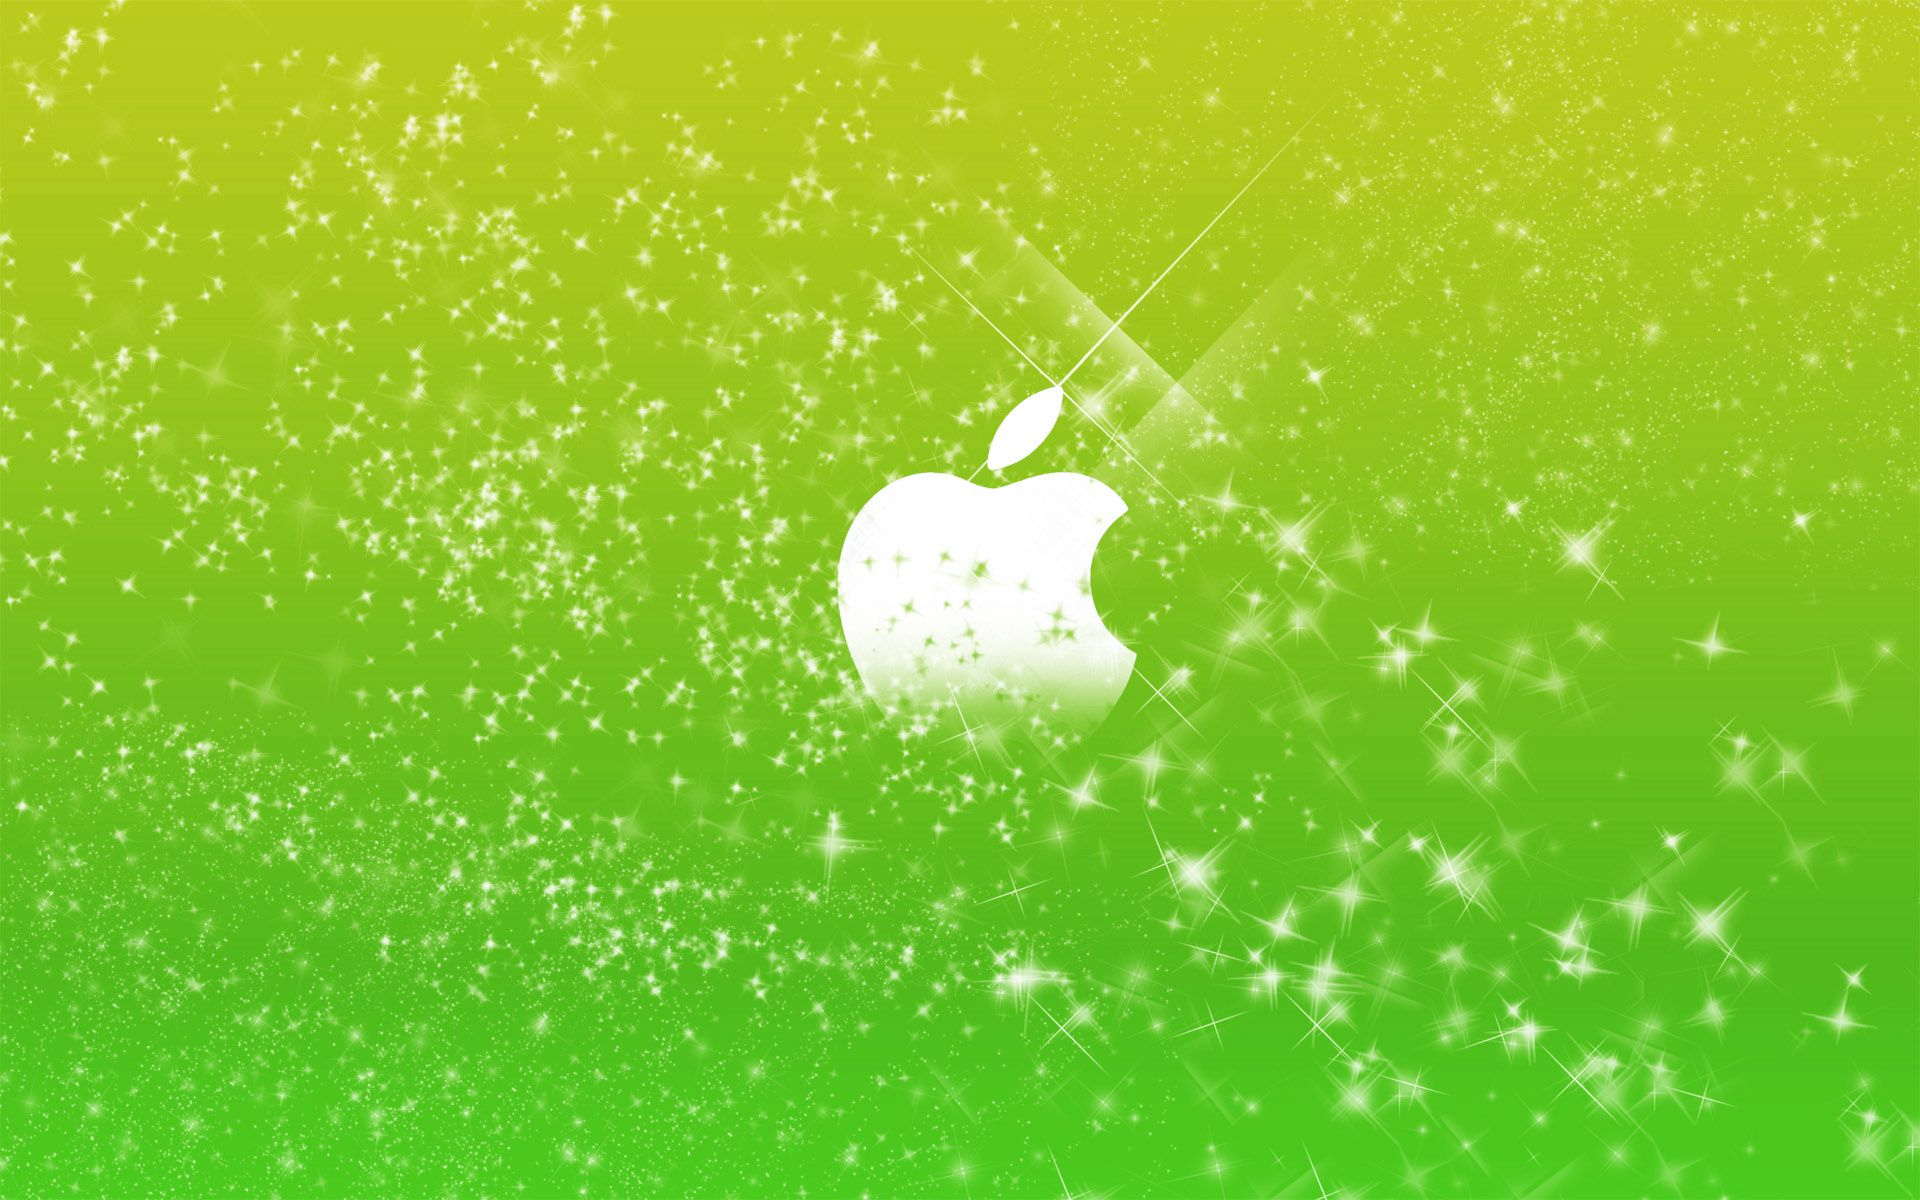 apple wallpaper a· apple logo in green glitters